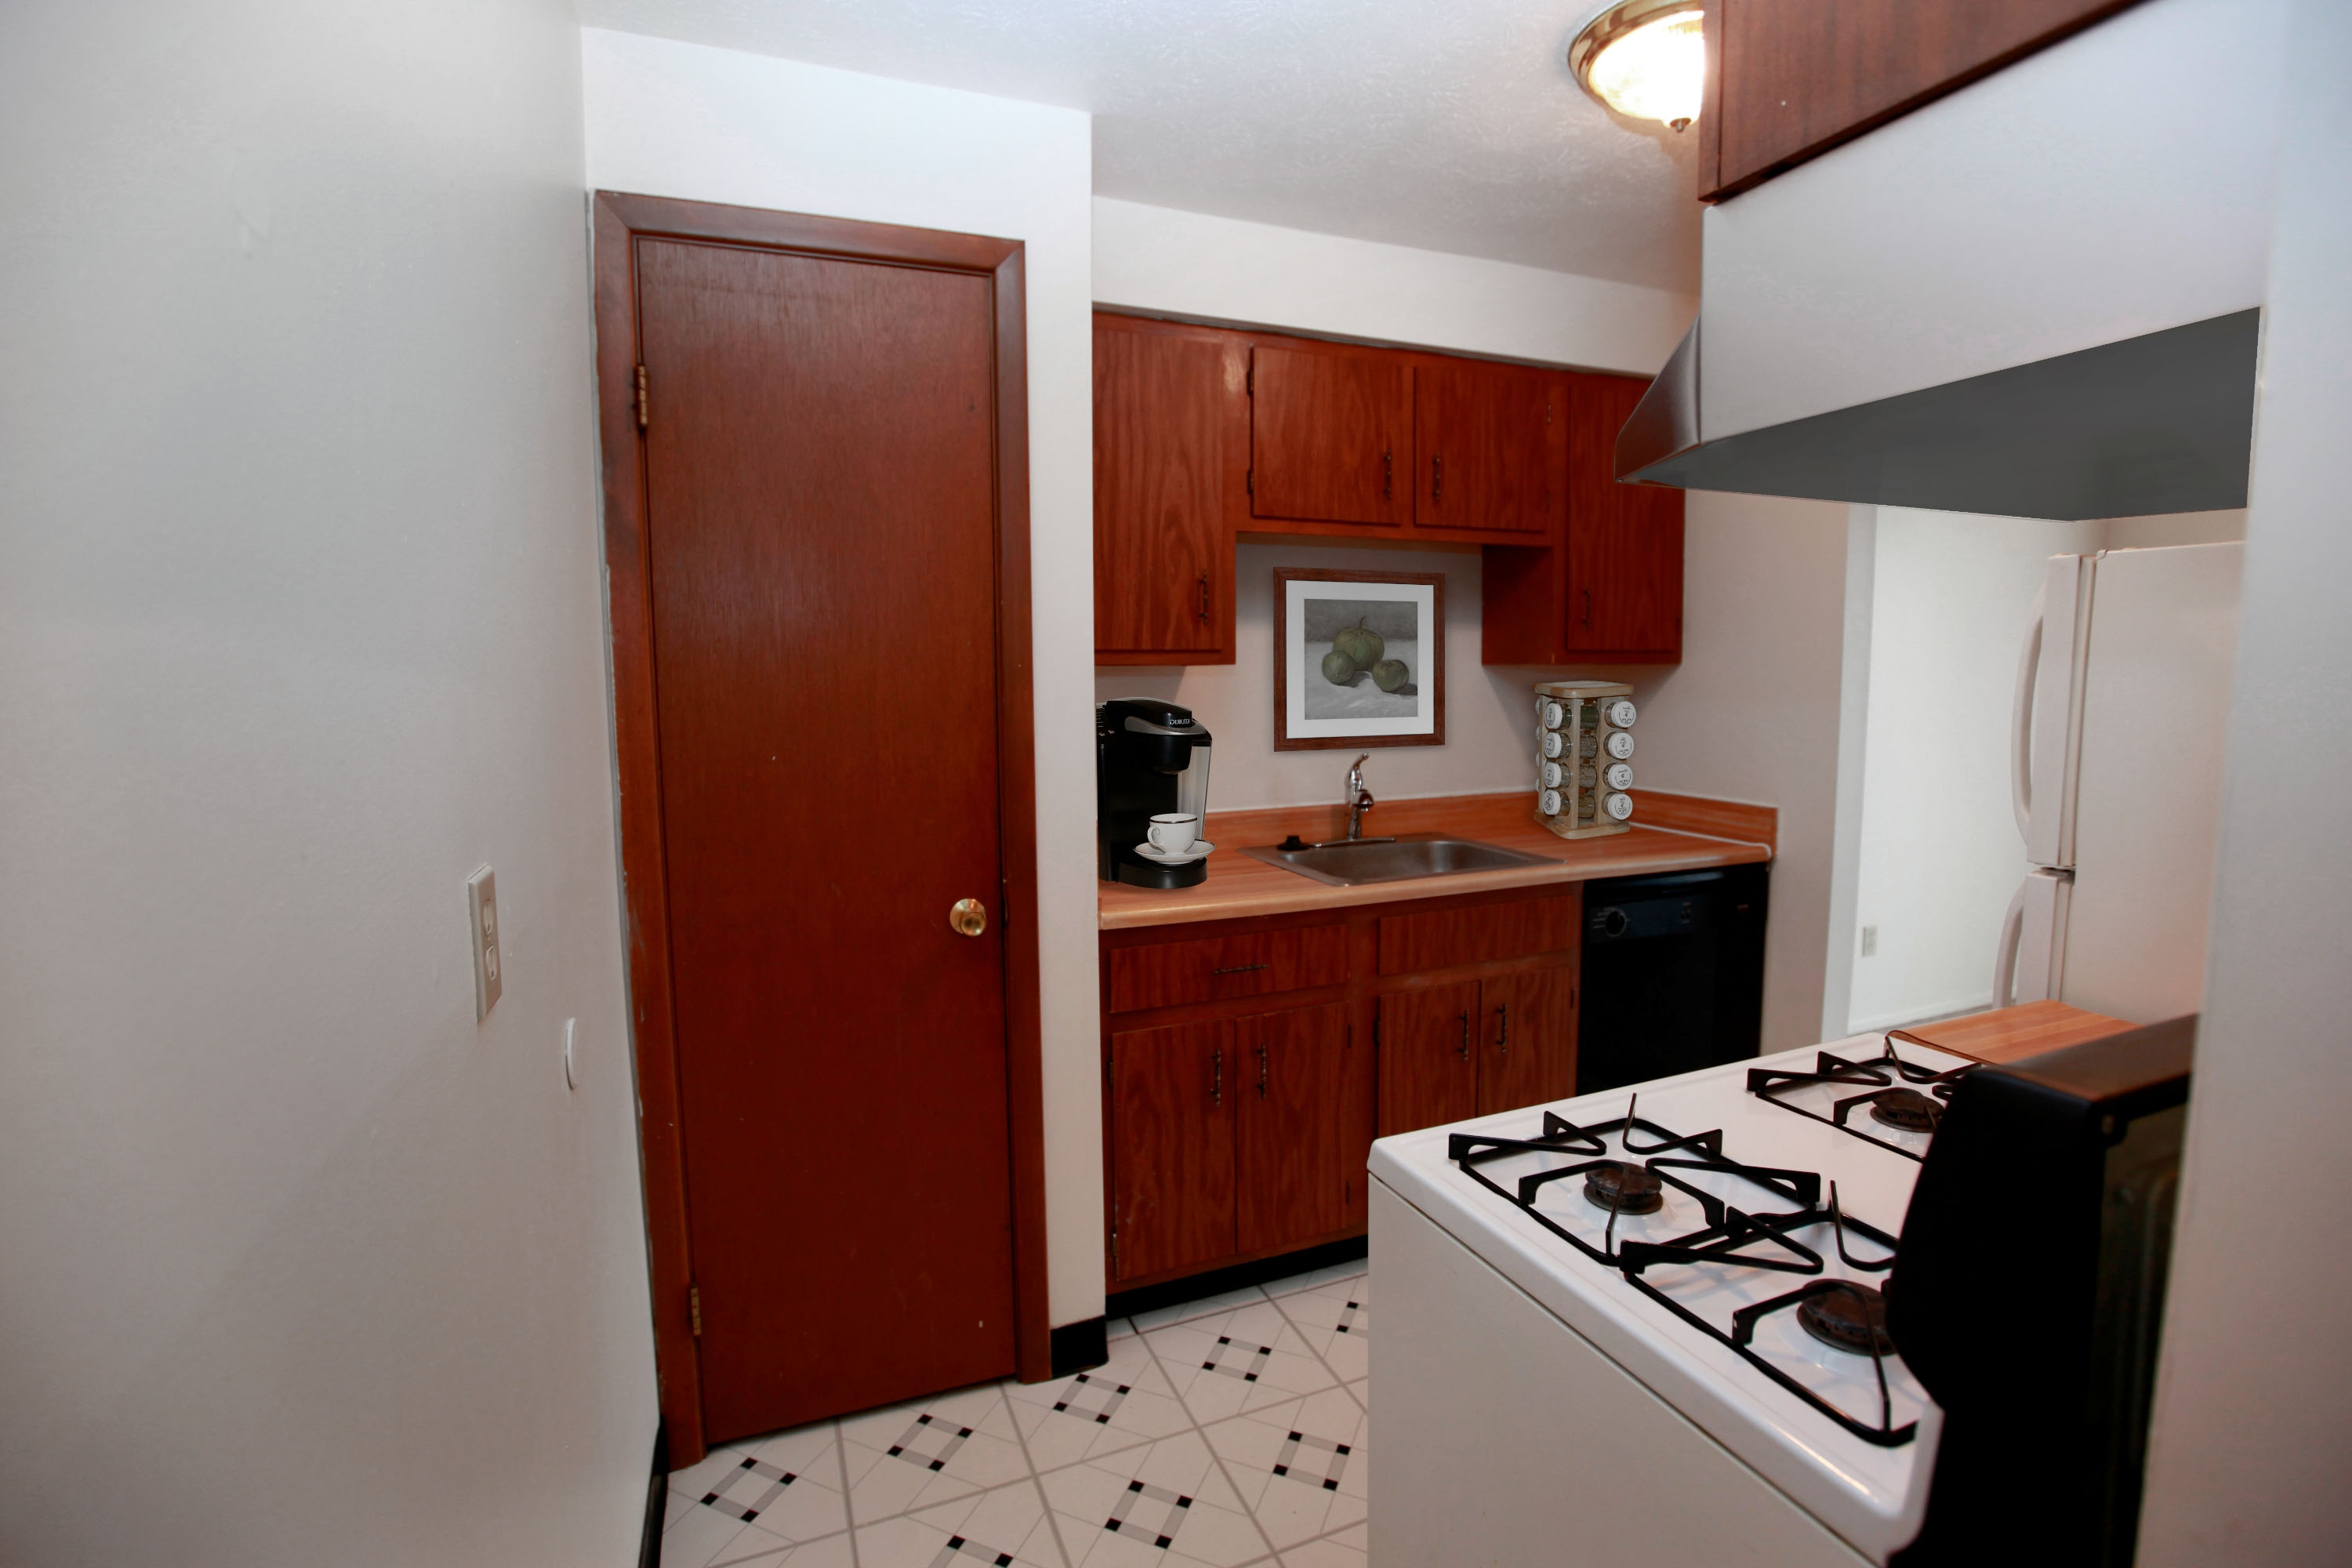 1C Kitchen at the Greenridge on Euclid Apartments in Euclid, OH